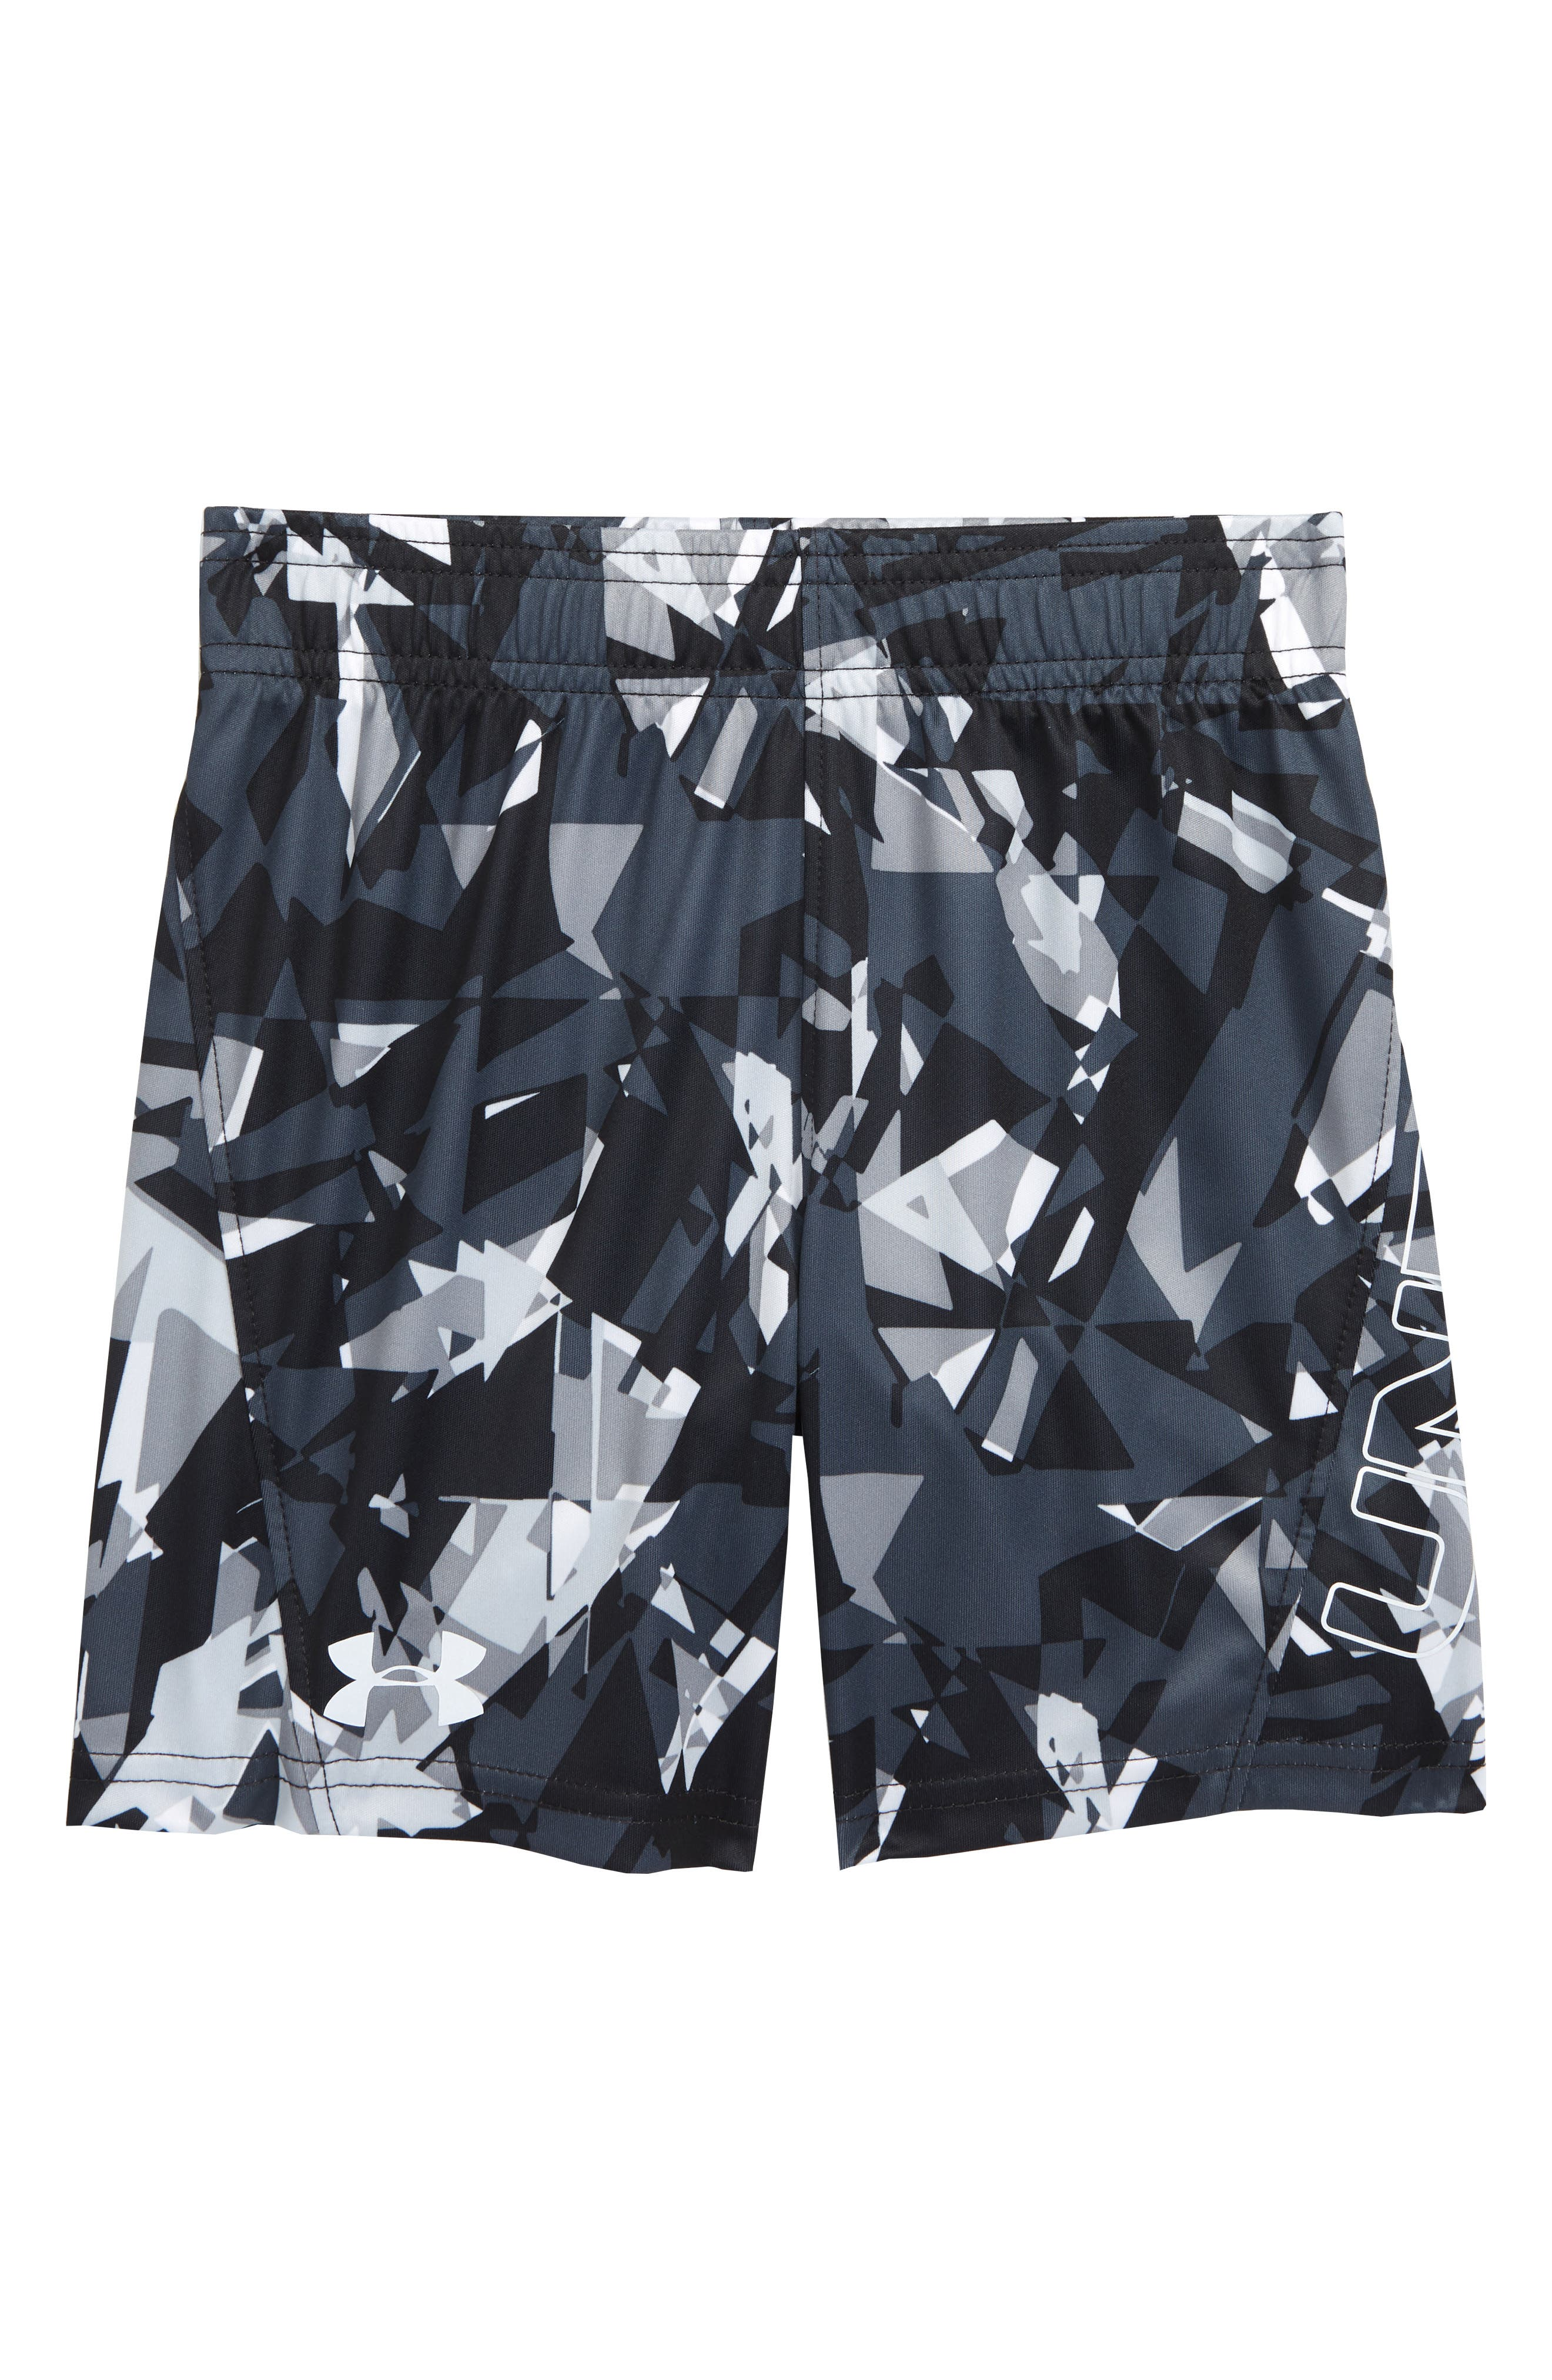 UNDER ARMOUR,                             Fracture Boost HeatGear<sup>®</sup> Shorts,                             Main thumbnail 1, color,                             001